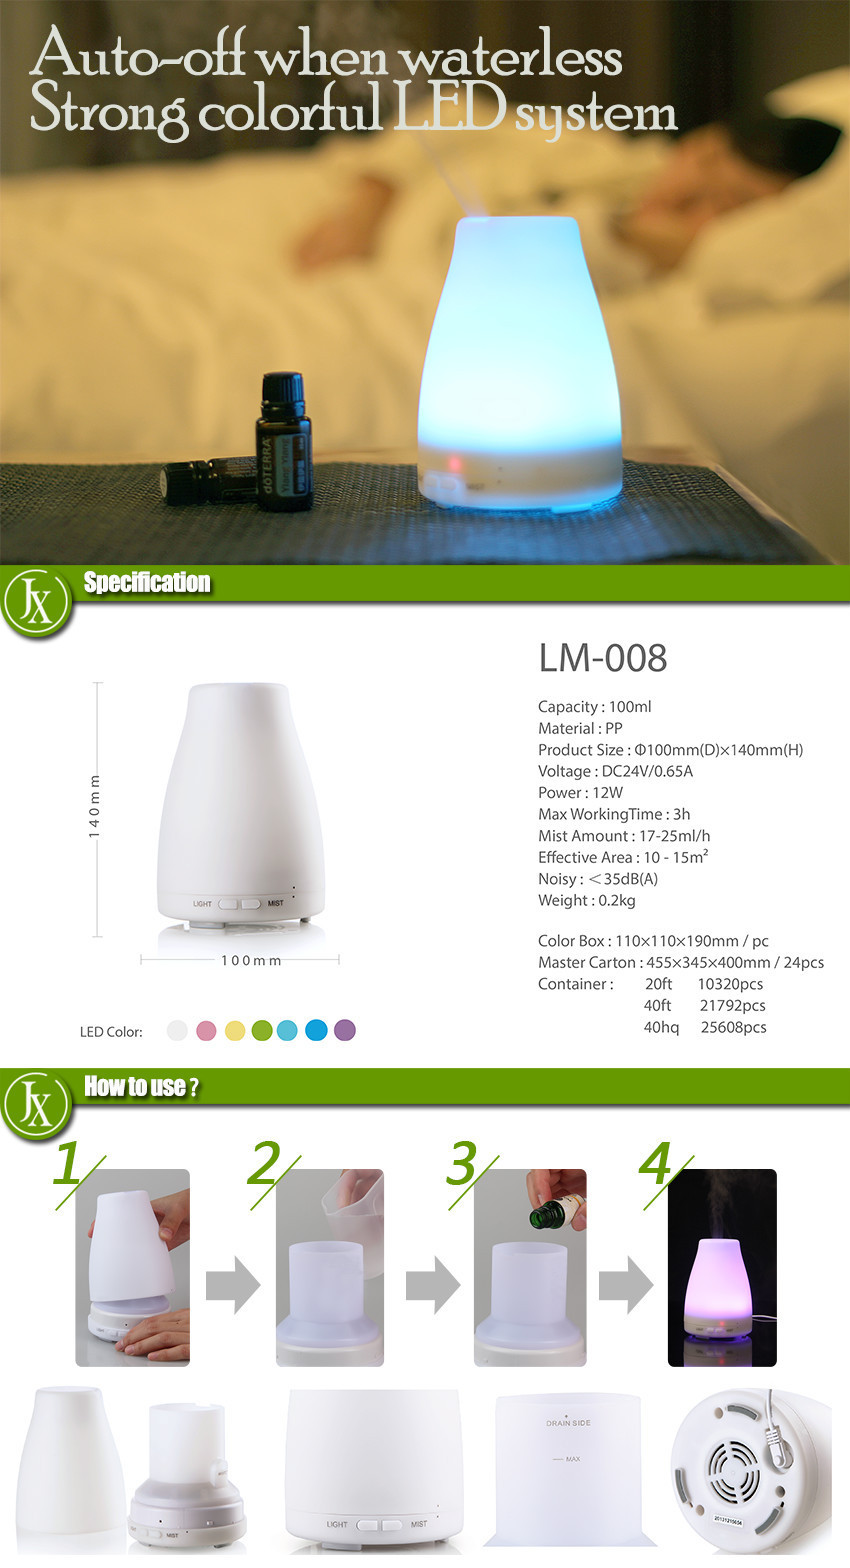 Oils Fragrance Diffuser 12v mist makers room deodorizers 12v mist makers